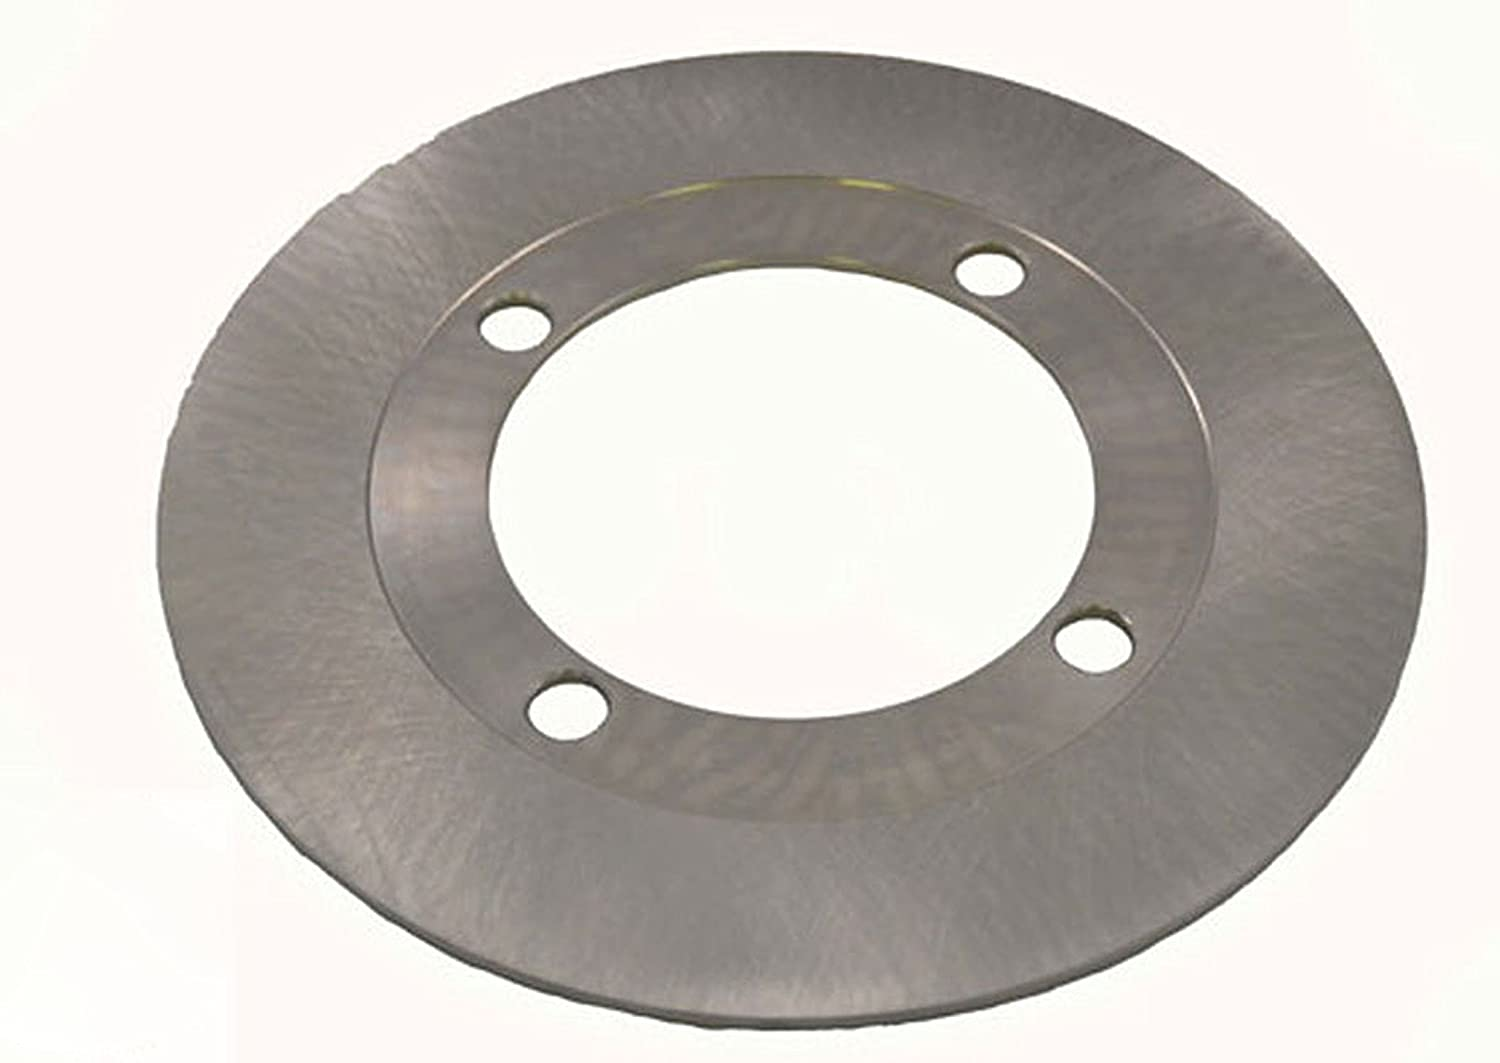 Brake Rotor Disc for Yamaha Rhino 450 YXR450 2004-2009 Front x1 by Race-Driven